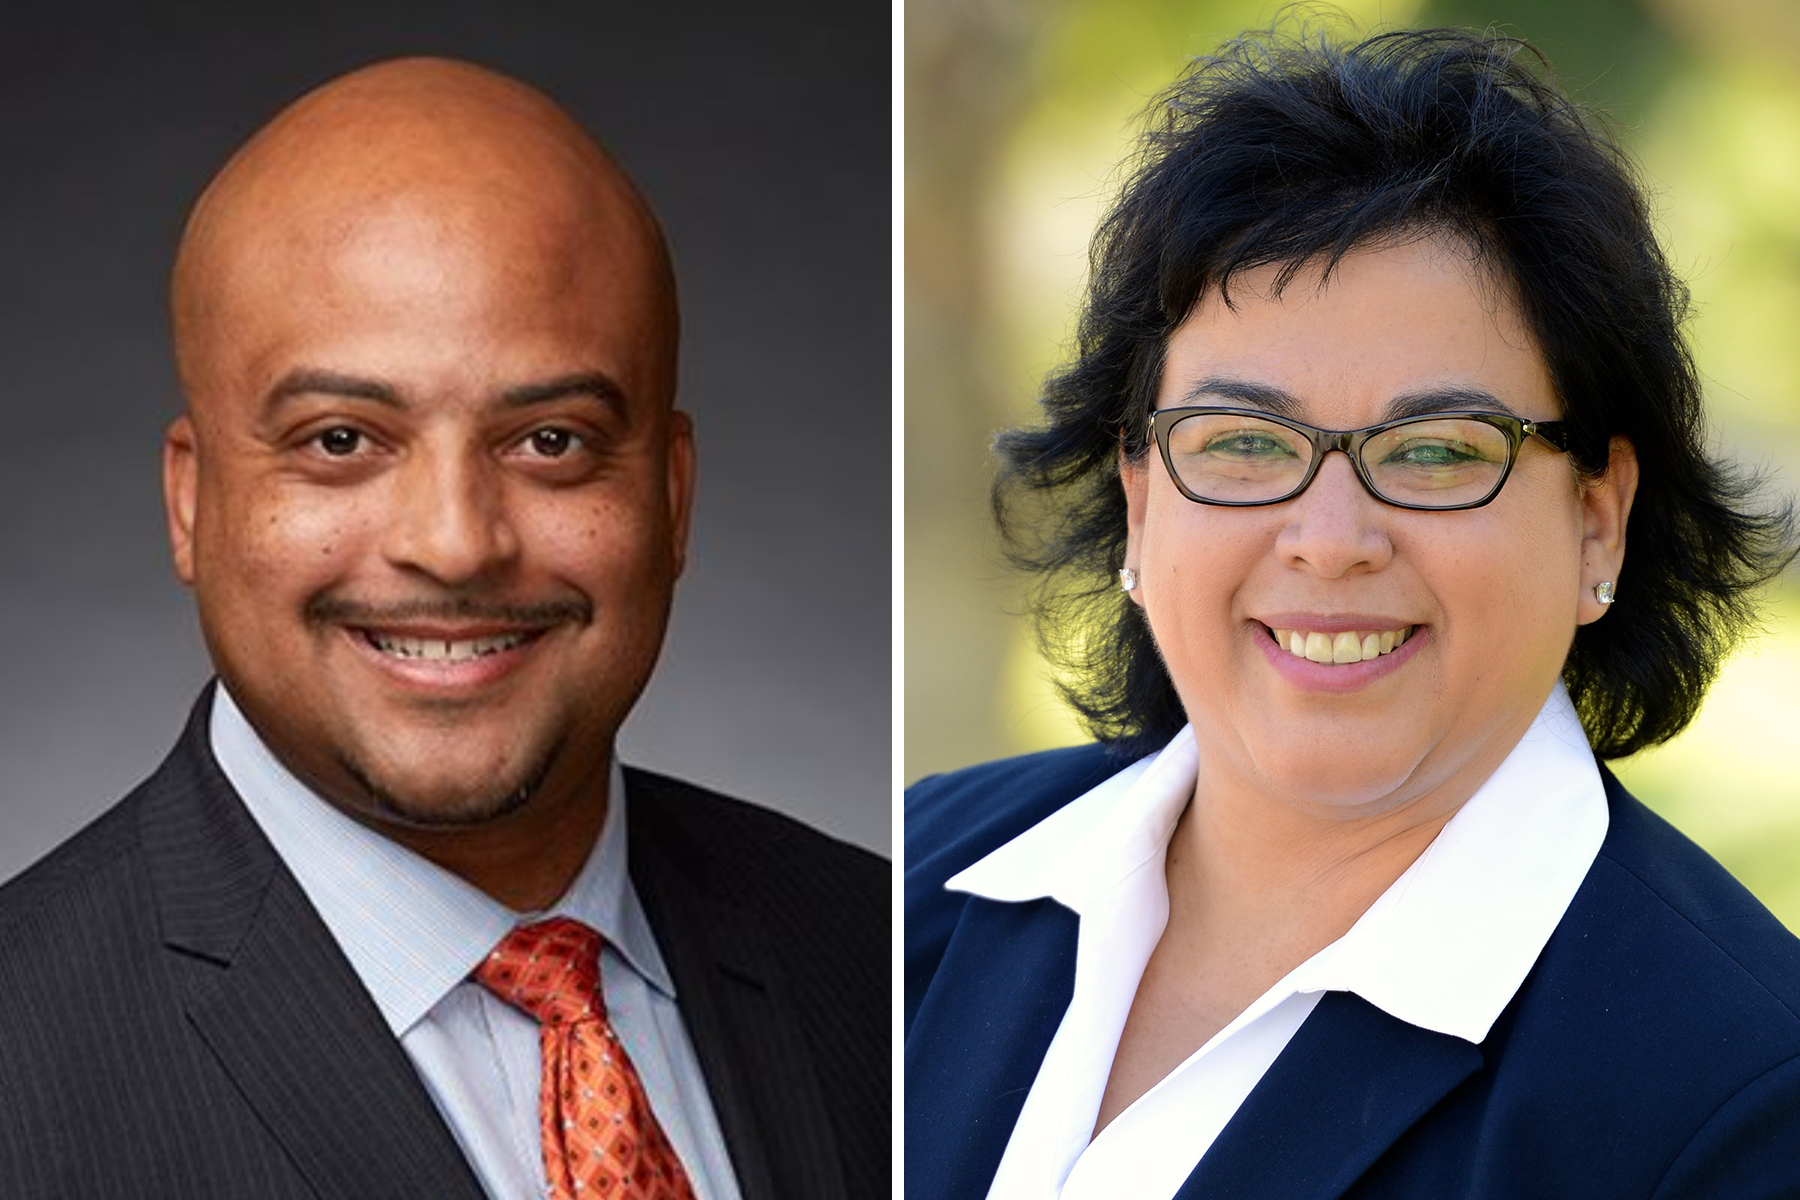 Dr. Edward Bush and Diana Rodriguez are finalists to become SBCCD's 15th Chancellor